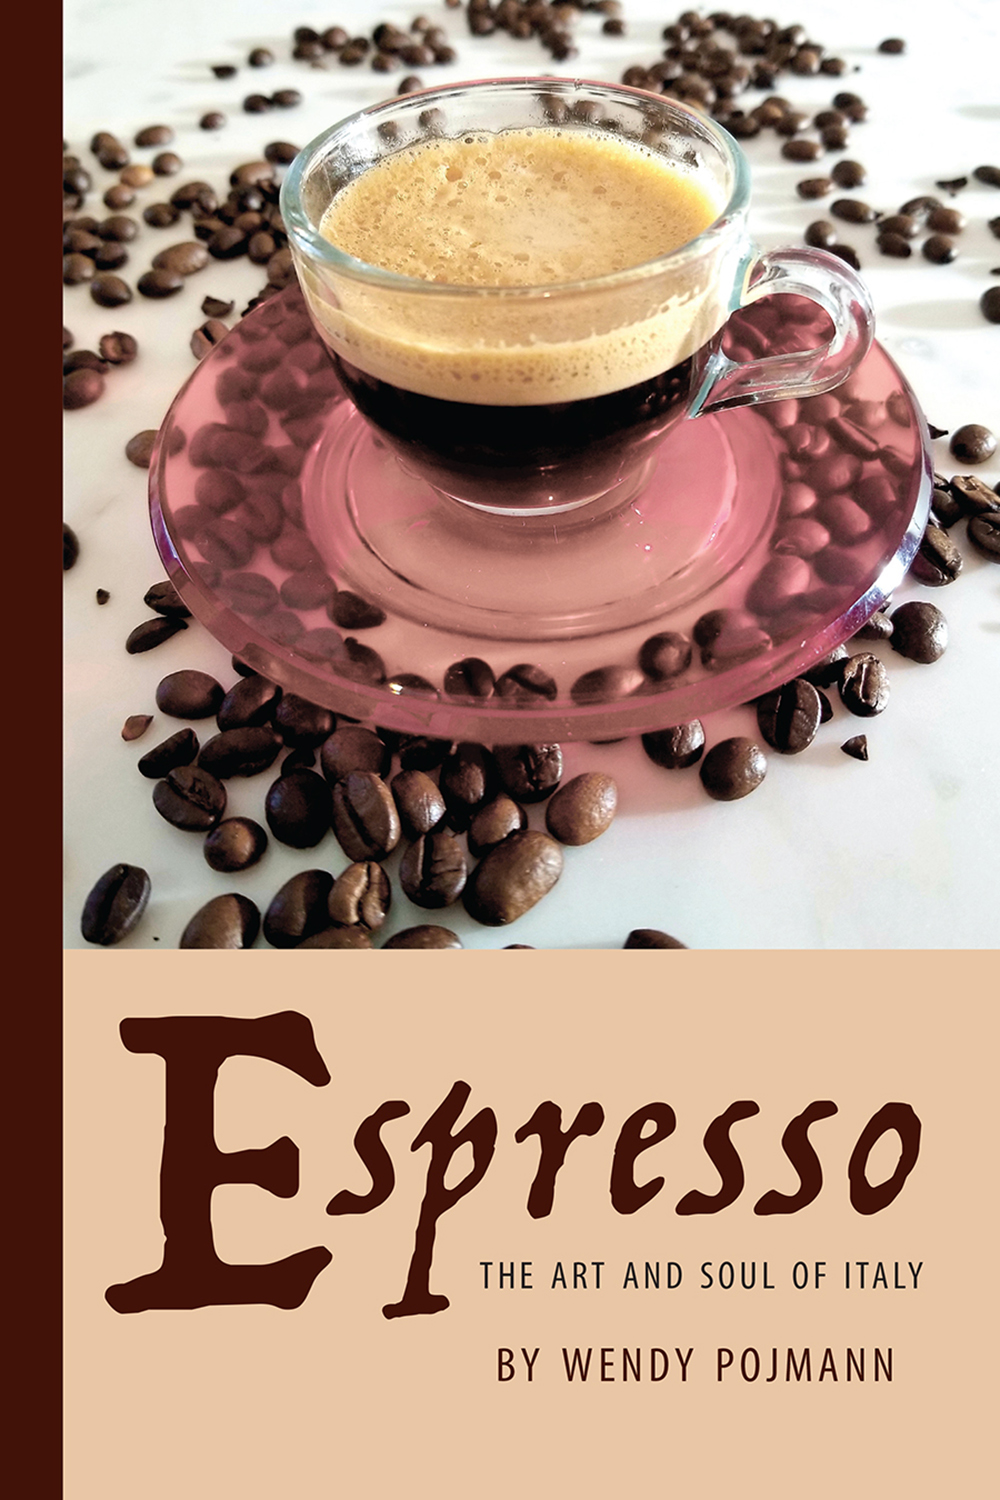 Espresso: The Art and Soul of Italy